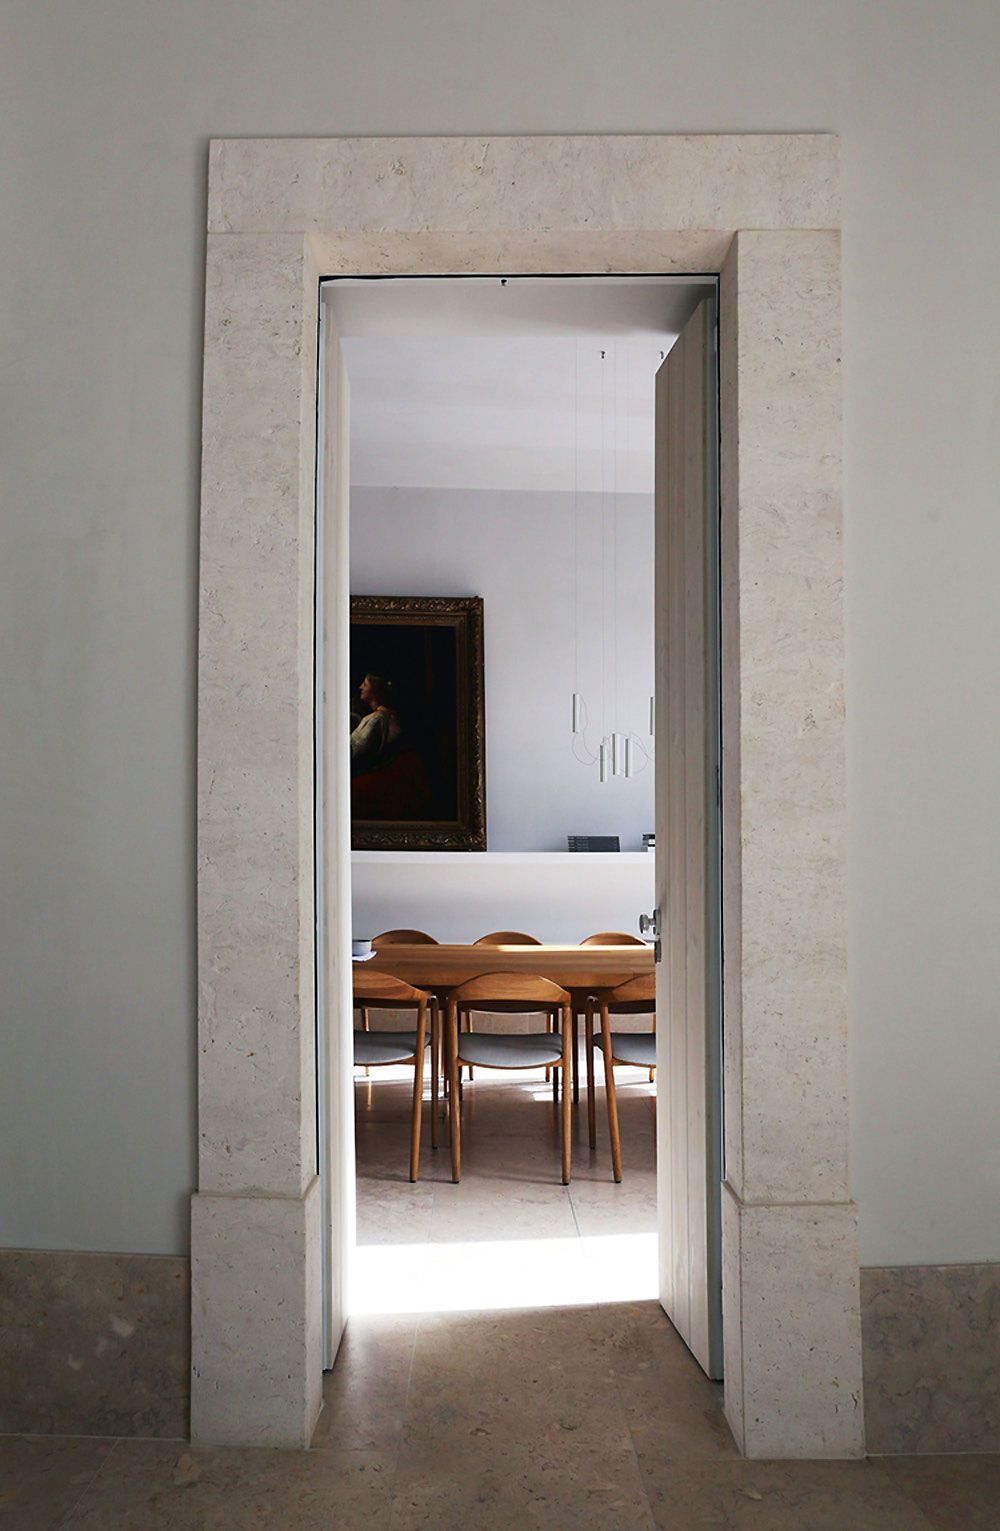 Santa, Clara, Lisbon, Joao, Rodrigues, Far, Close, Interiors, Hotel, Apartment, Sunday, Sanctuary, Oracle, Fox